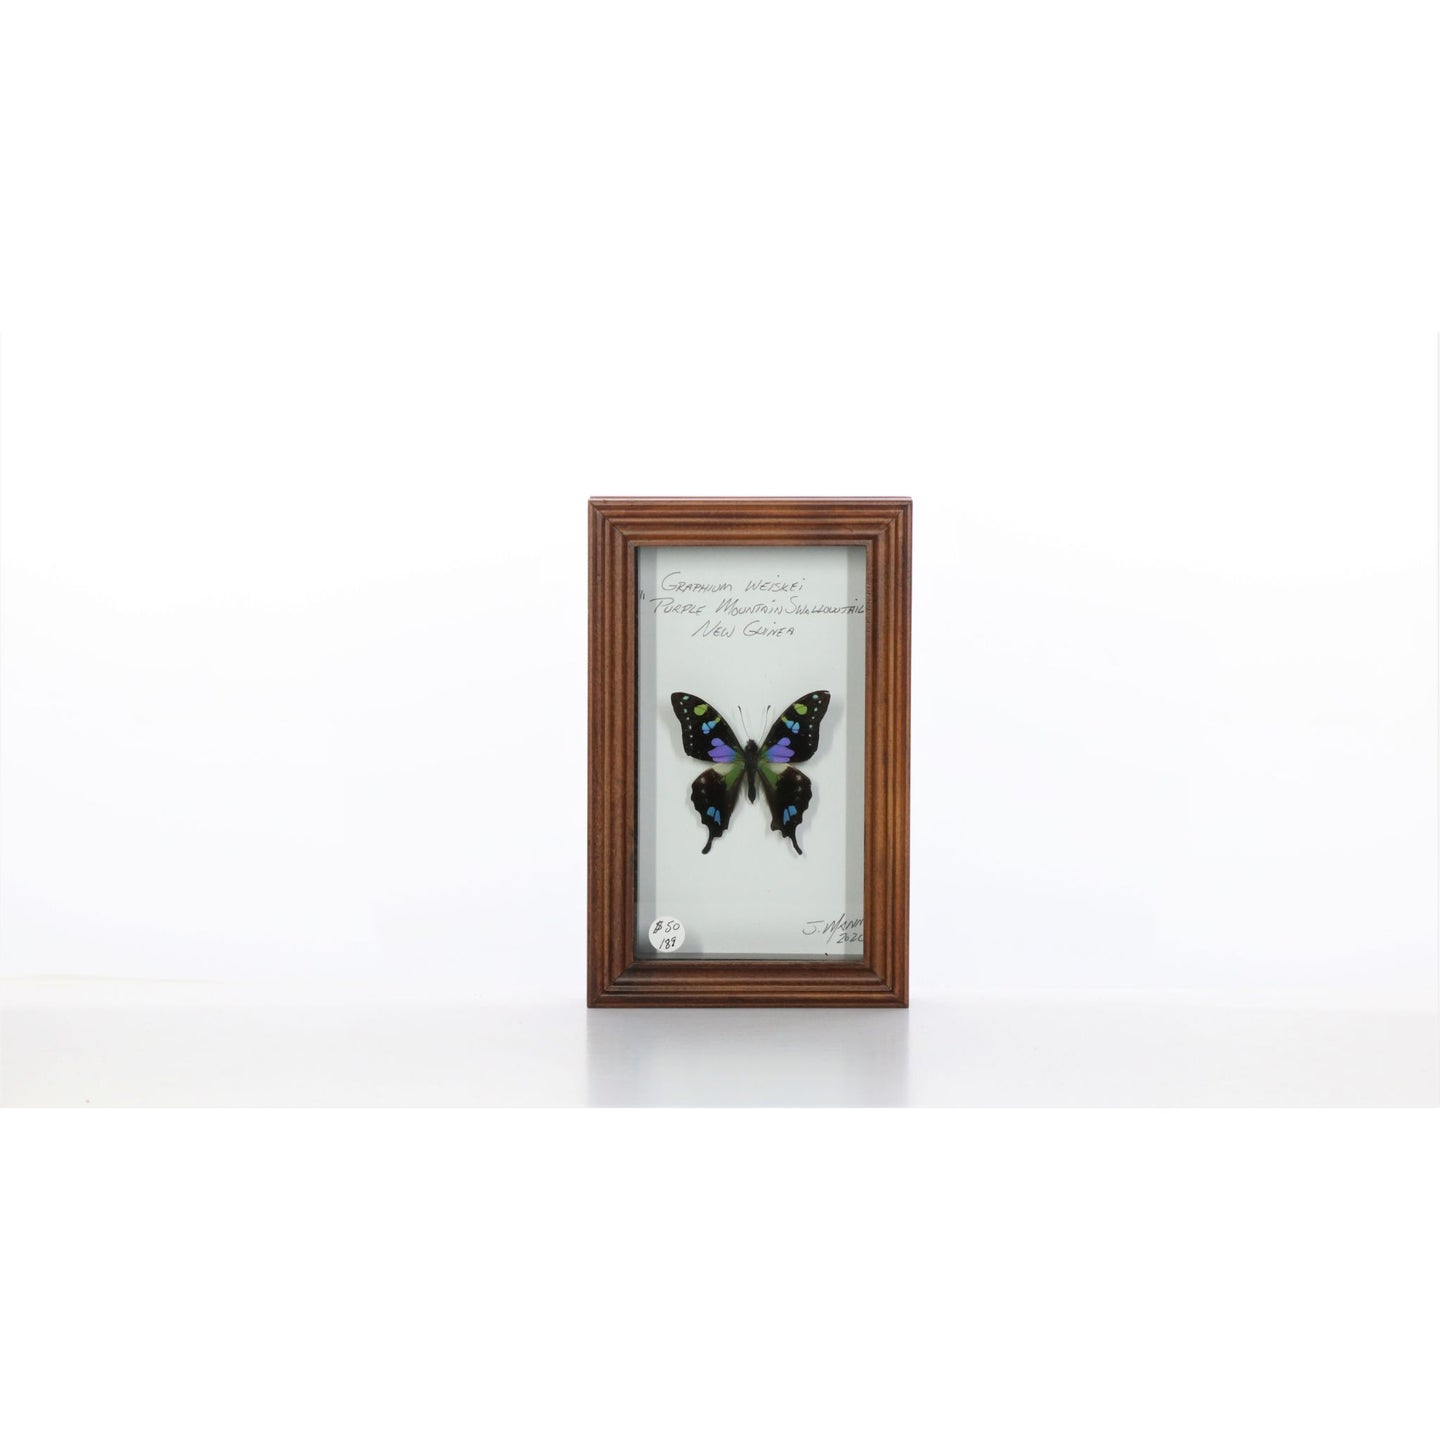 Purple Spotted Swallowtail 4x7 Brown #189 Framed Art - Insecta Etcetera